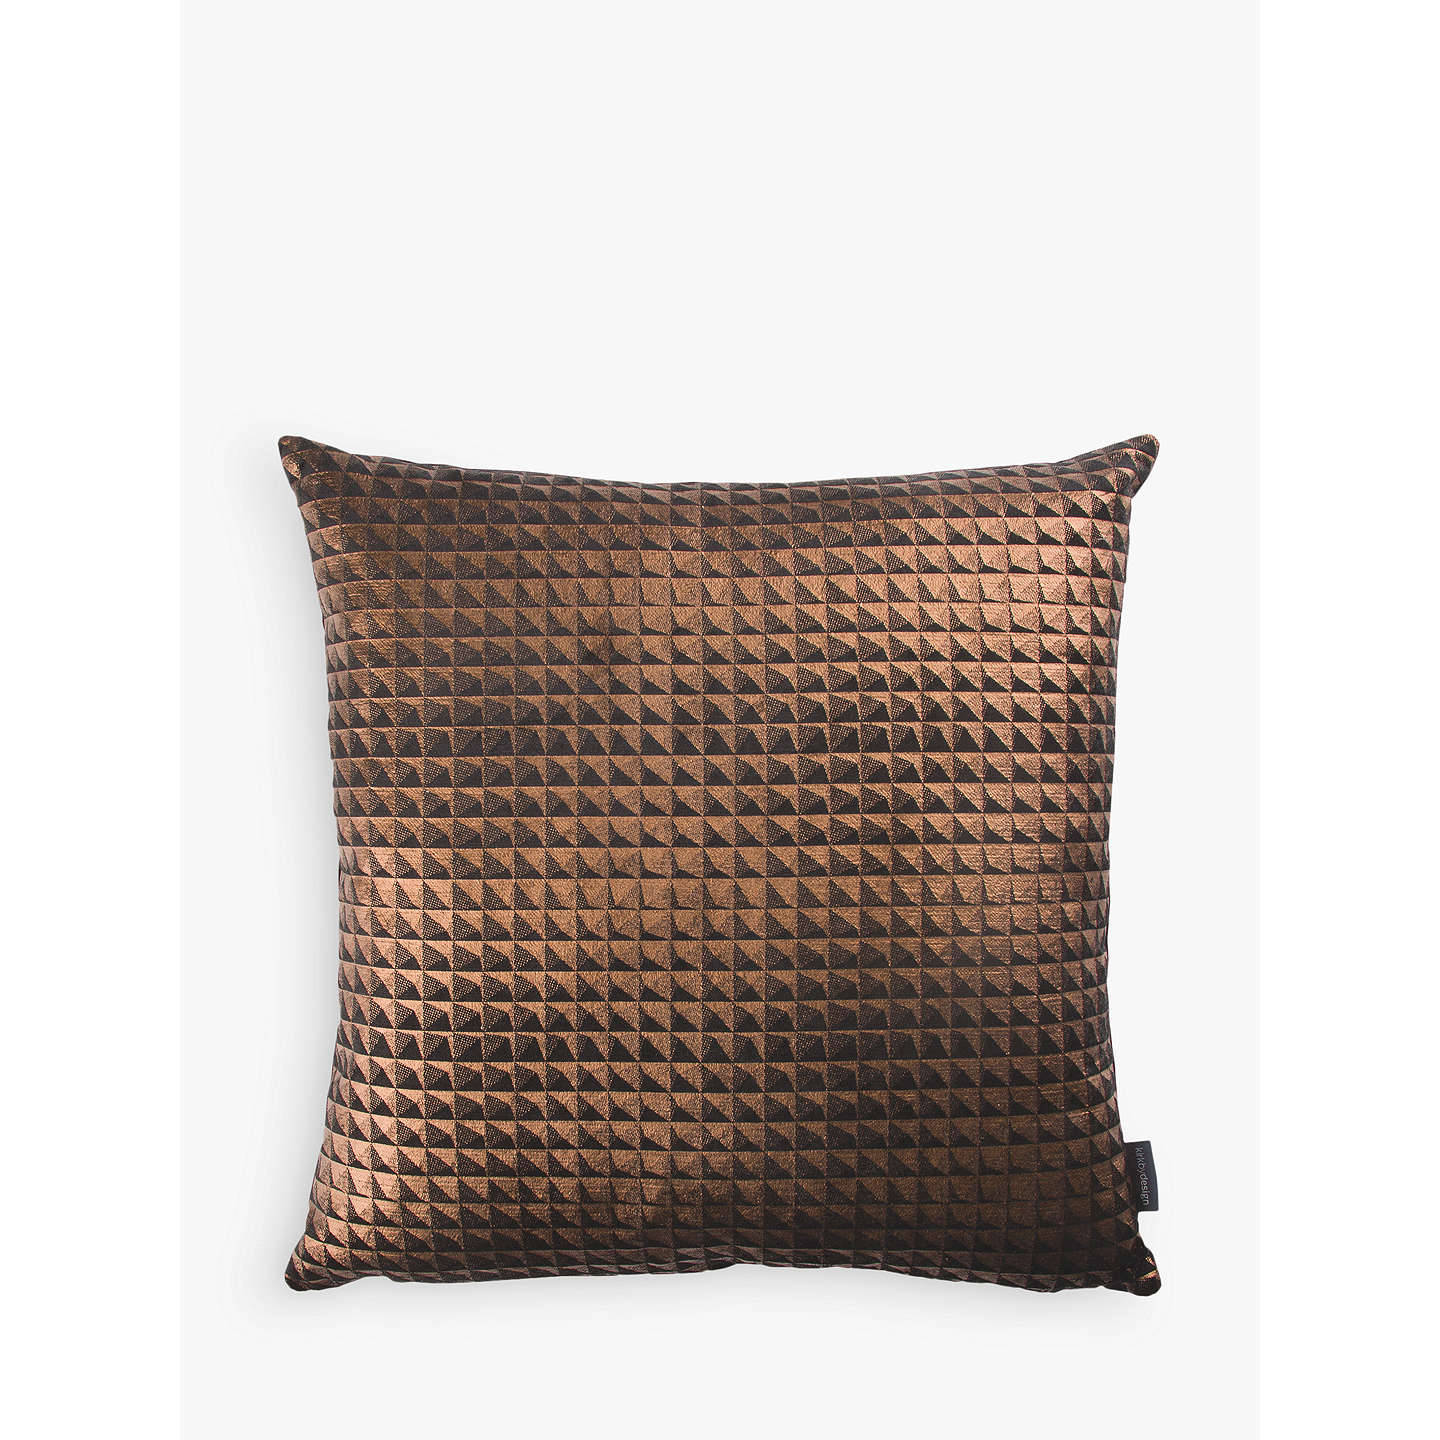 BuyKirkby Design by Romo Eley Kishimoto Collection Moonlit Pyramid Cushion, Bronze Online at johnlewis.com